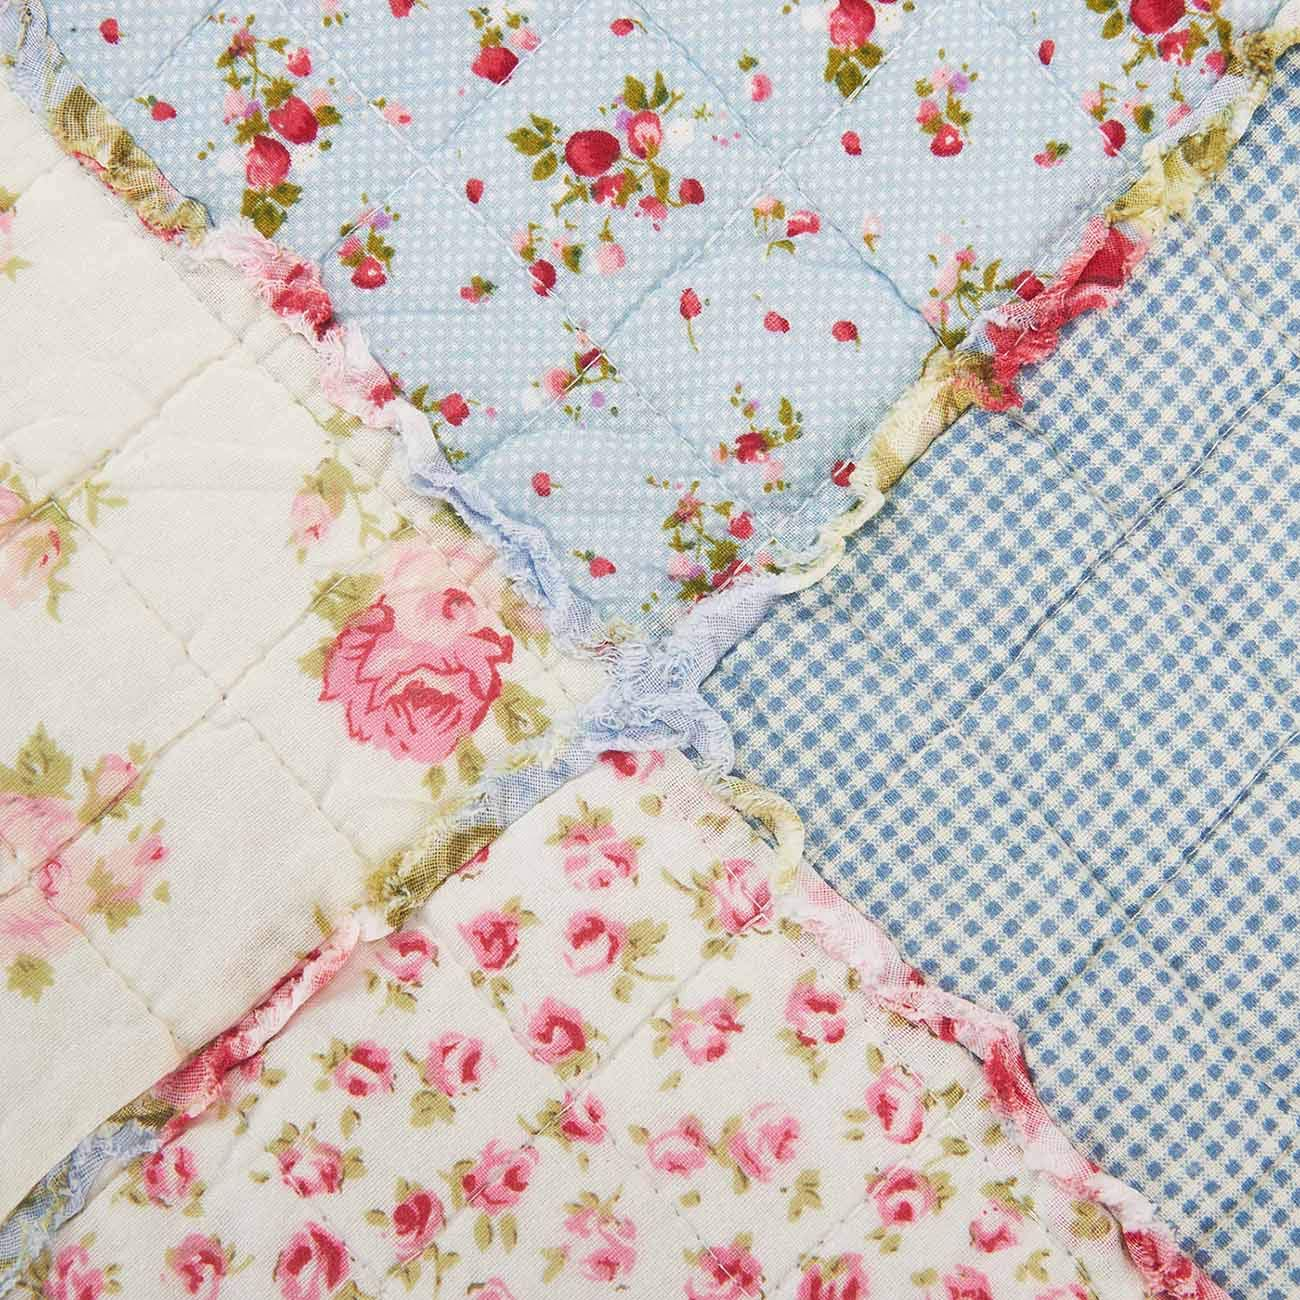 Cozyholy Original Design Coverlets Quilted Blanket 100/% Cotton Bed Cover Quilt Throw for Twin//Full Bed Flower